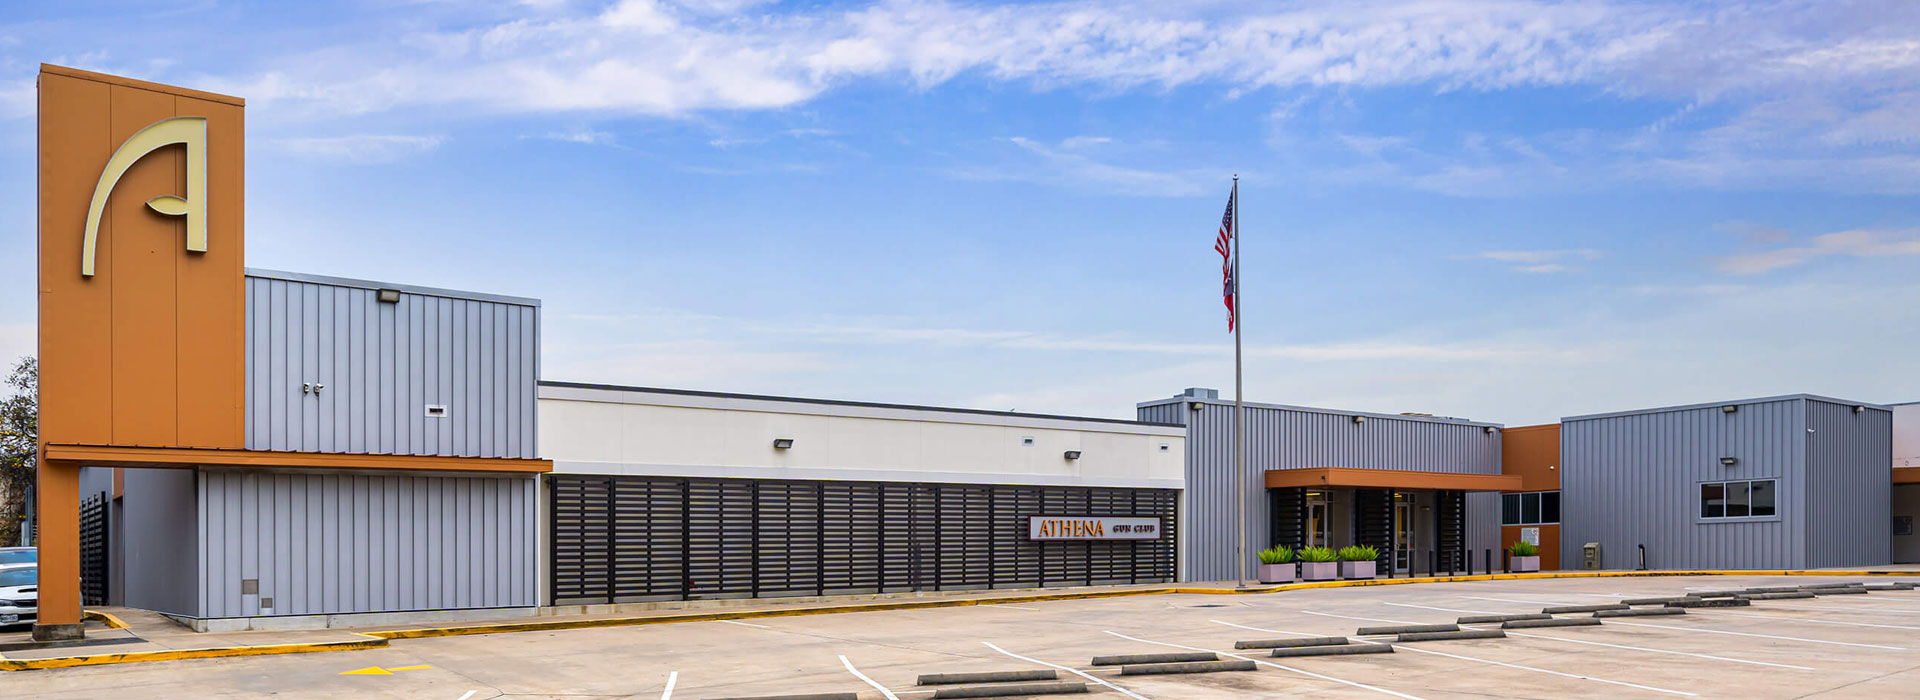 Welcome to Athena Gun Club in Houston, TX just off the Katy Freeway near Memorial City